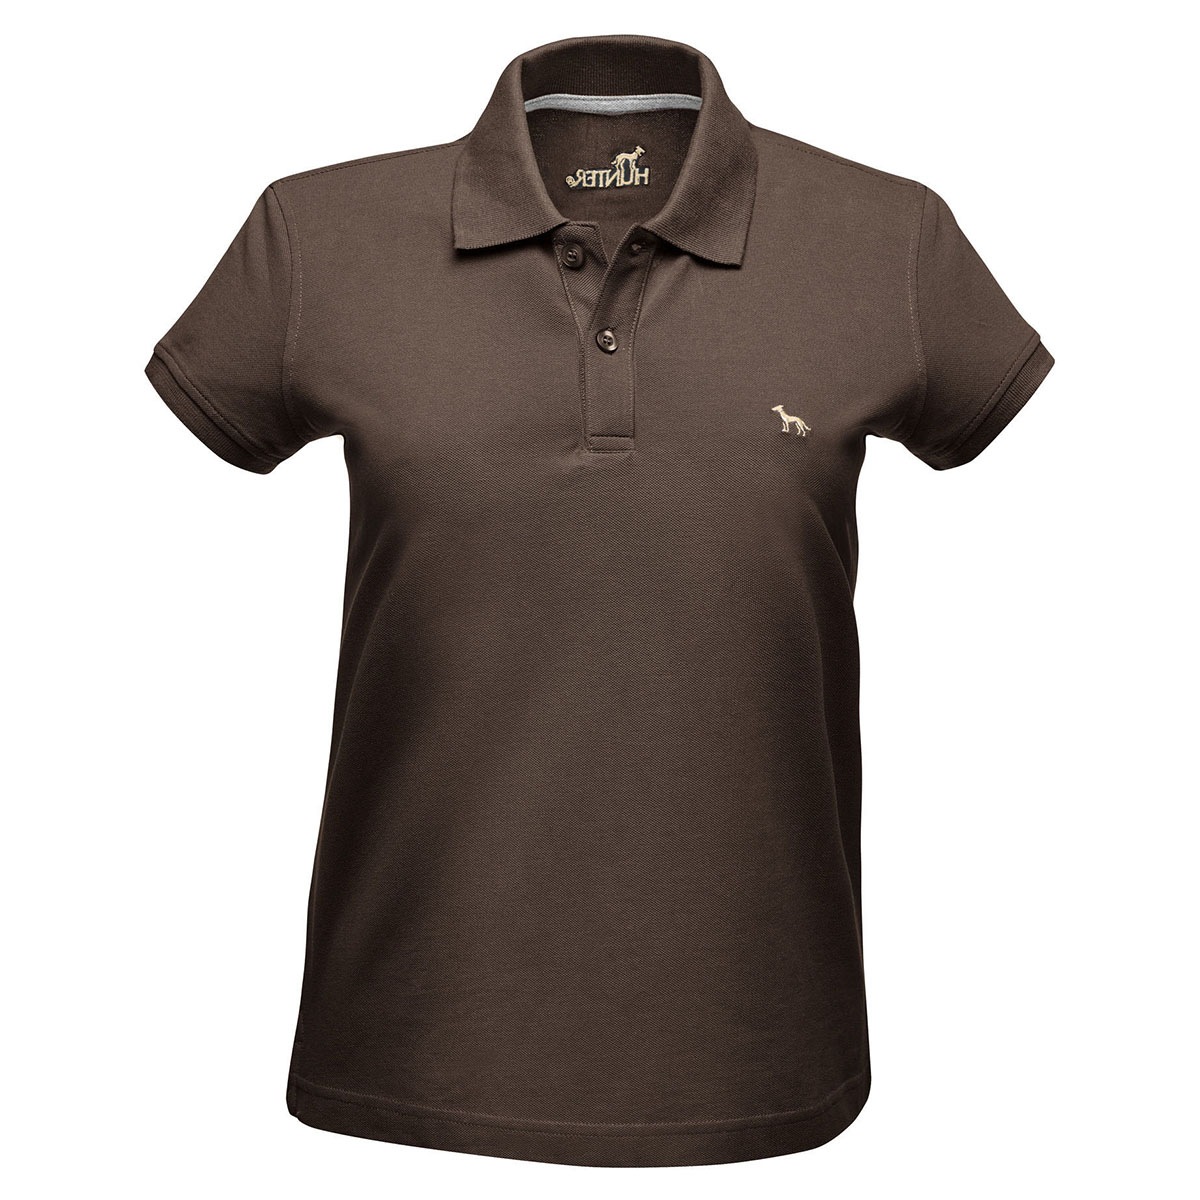 221893baf2d2dc ... coupon code for hunter herren poloshirt braun 59147 fcc7b